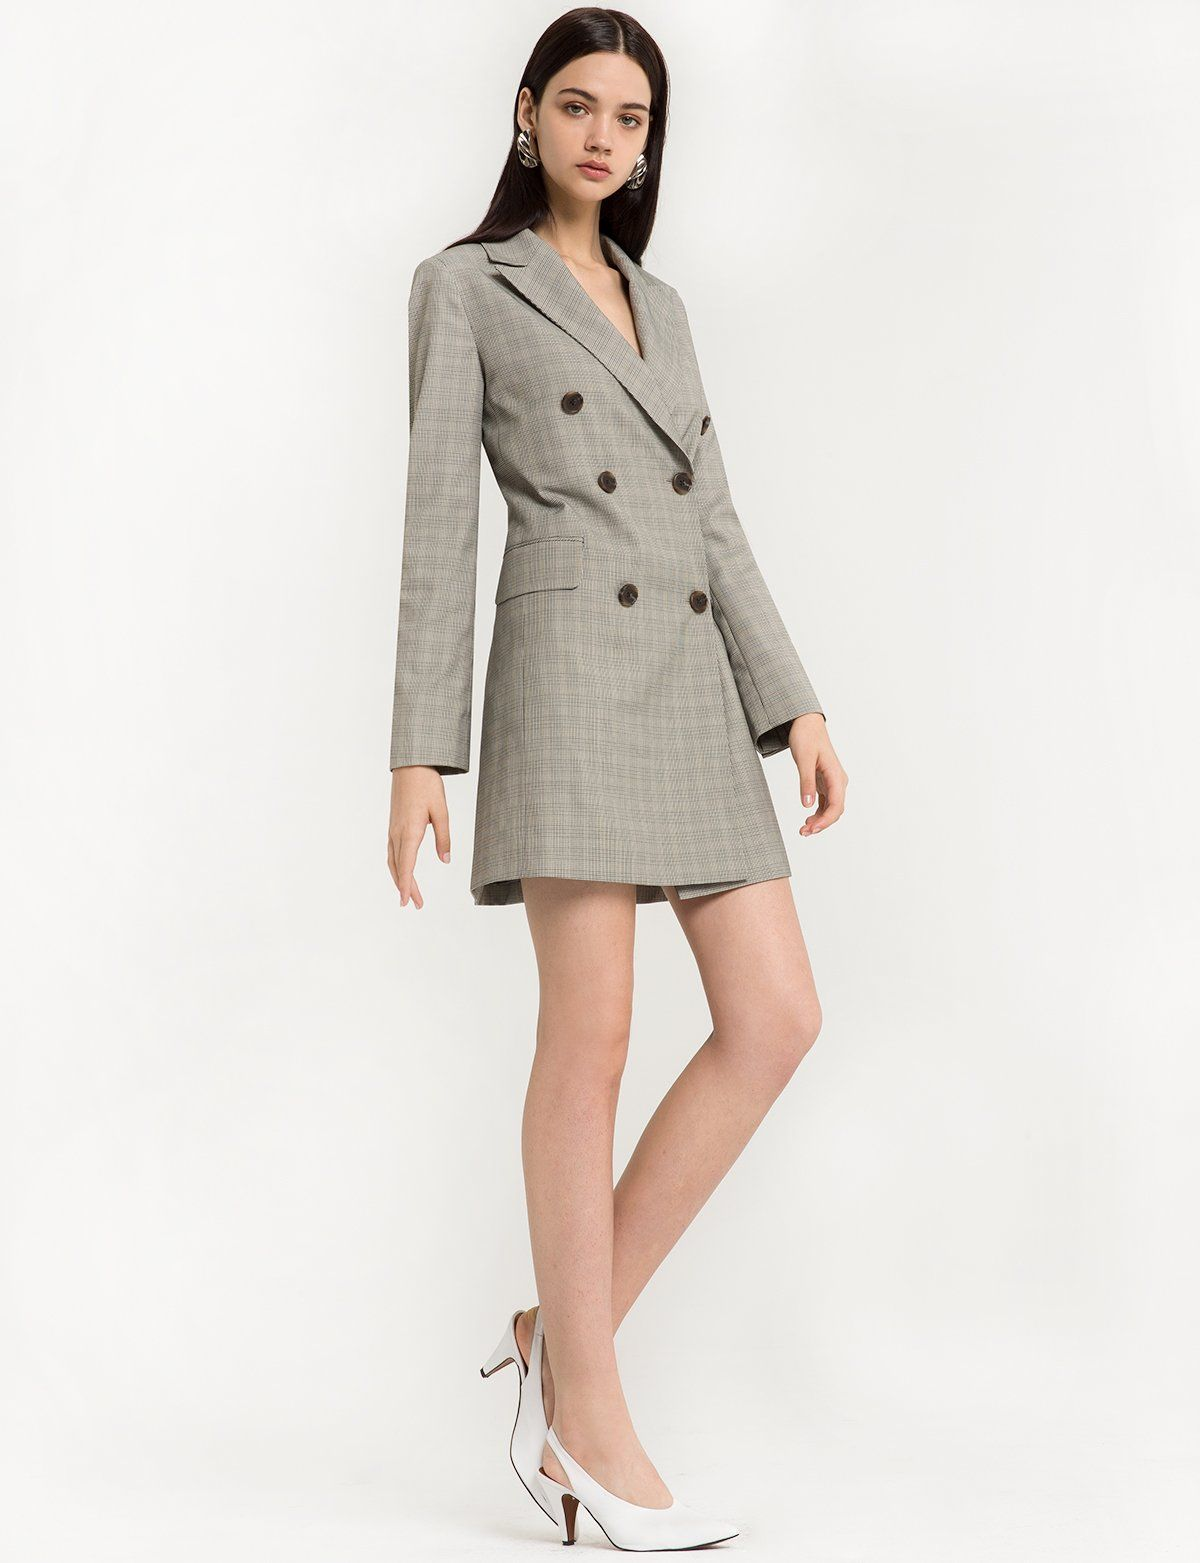 9f73801668e0 Aerin Double Breasted Blazer Dress   double breasted tailored dress ...